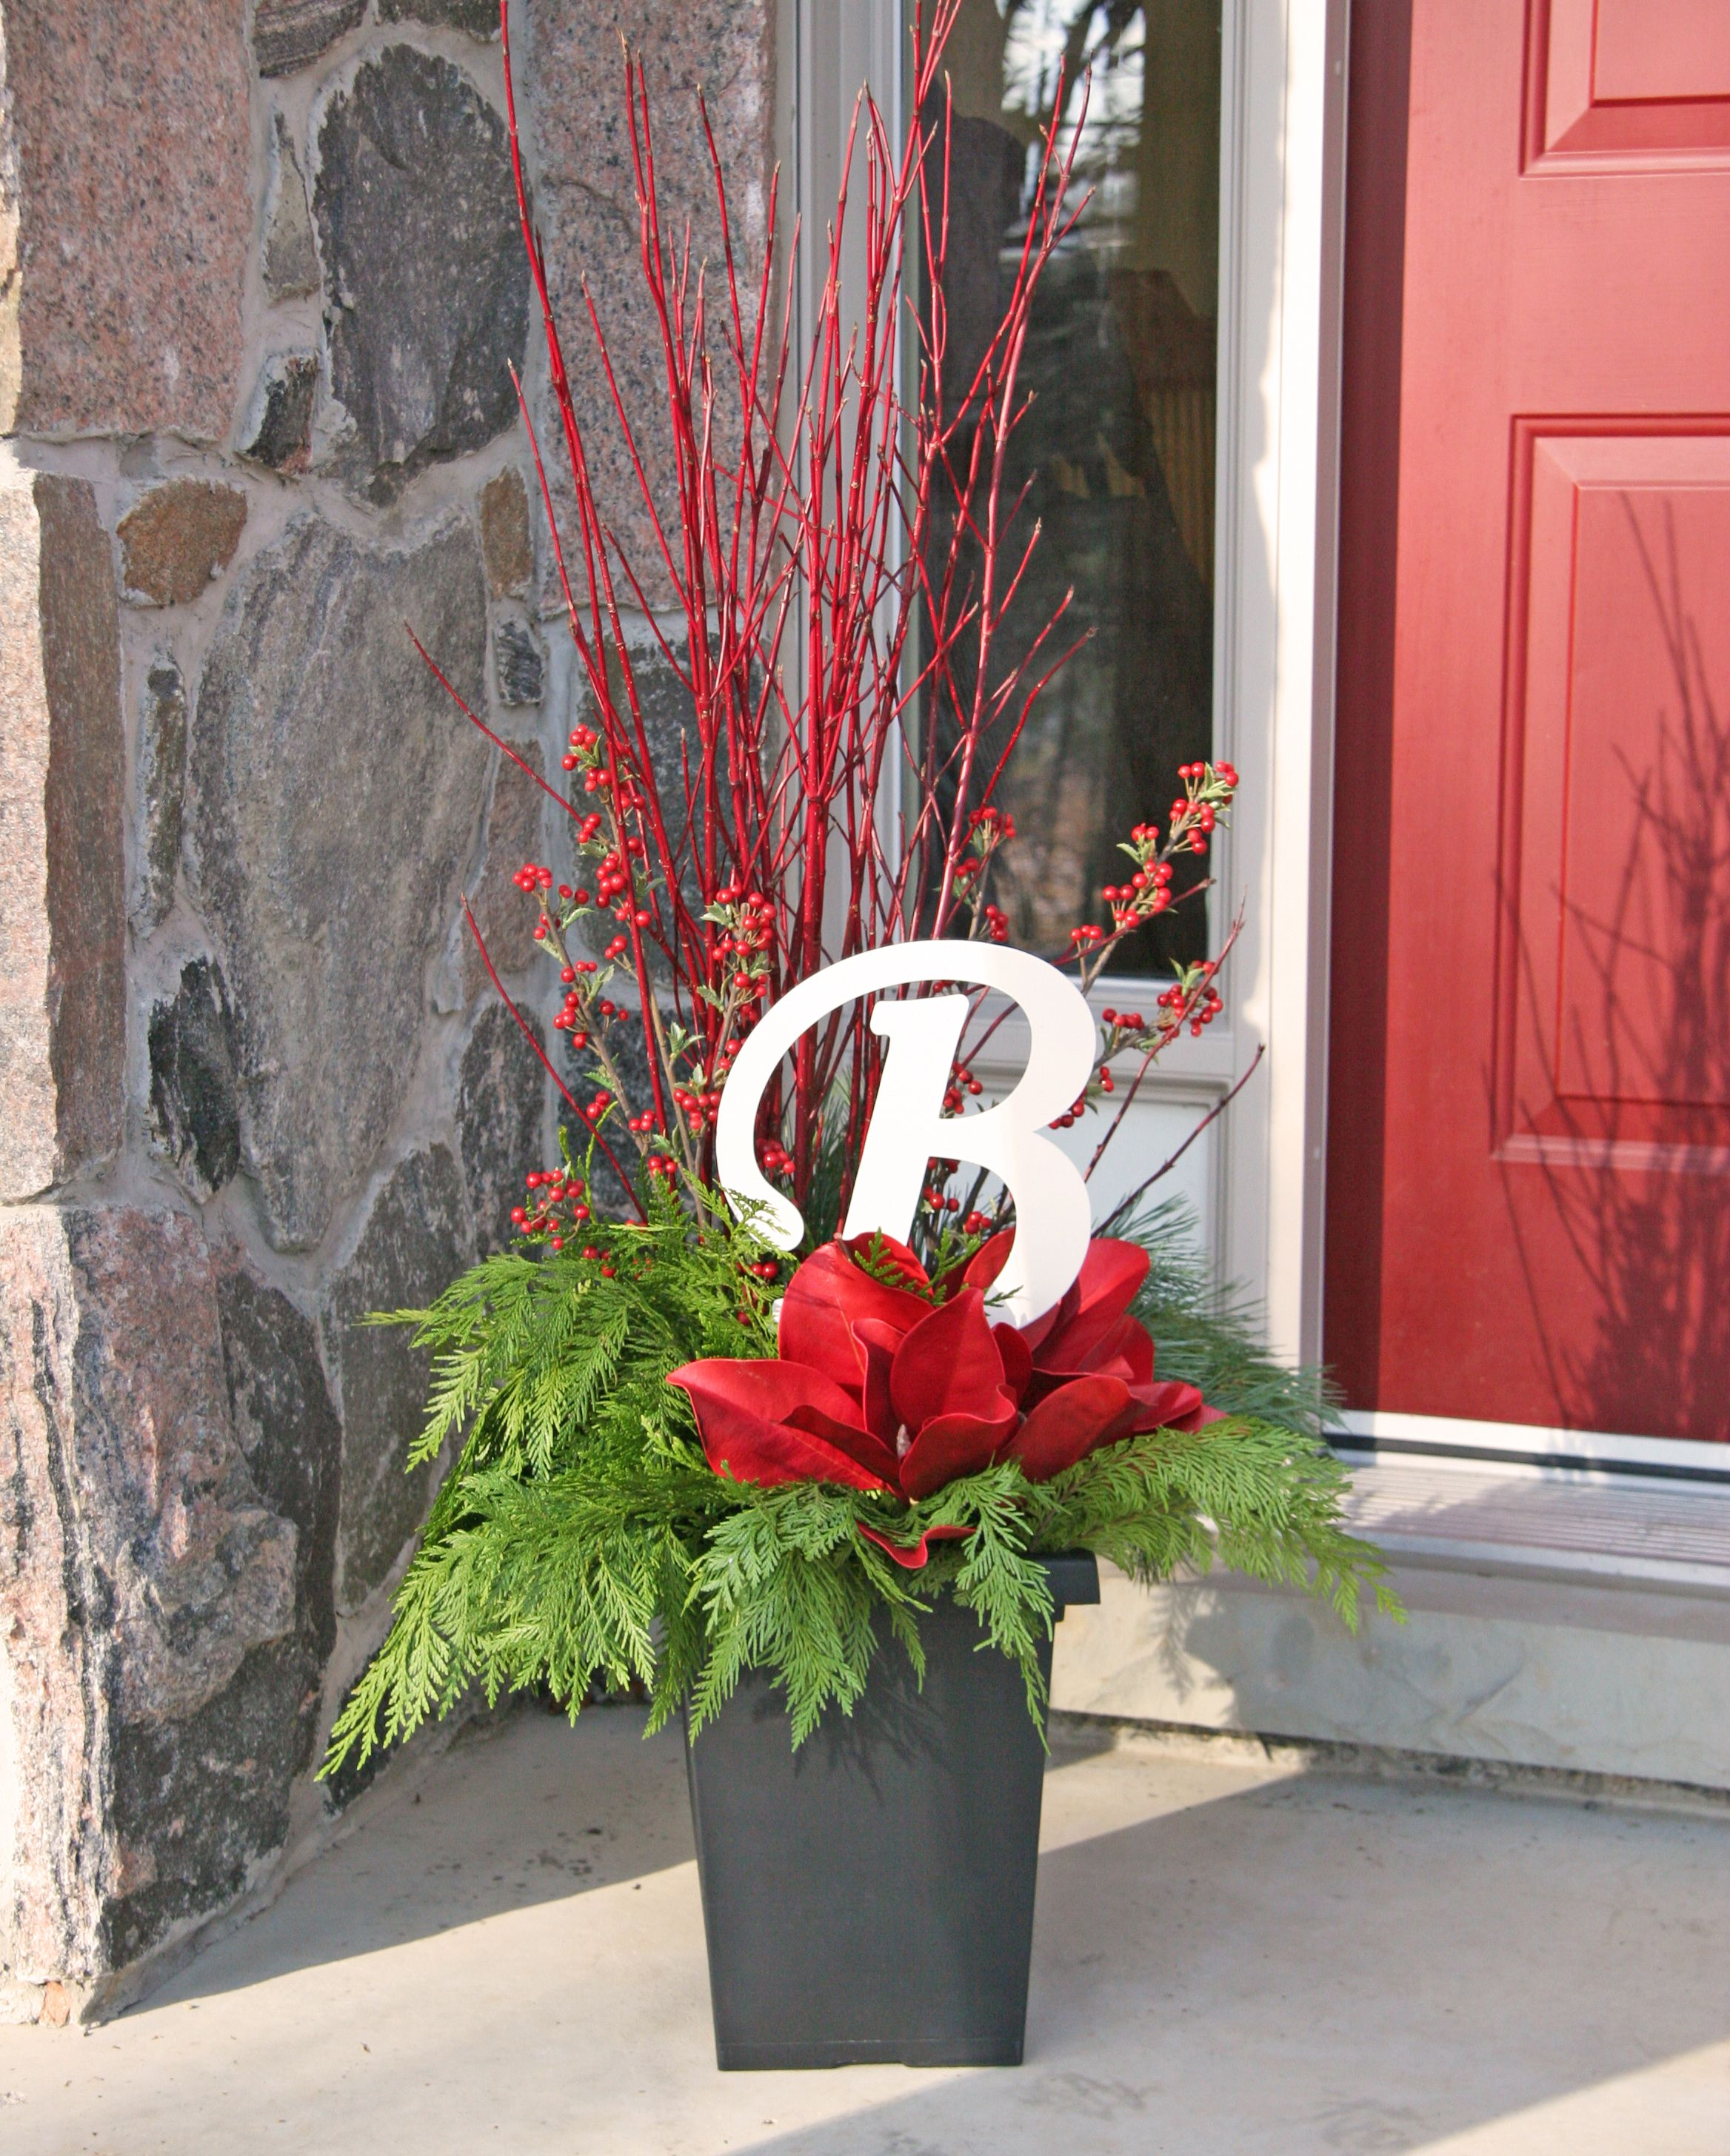 #9C2F32 Outdoor Christmas Planter Designs Submited Images. 5779 laser deco noel exterieur gifi 2336x2912 px @ aertt.com